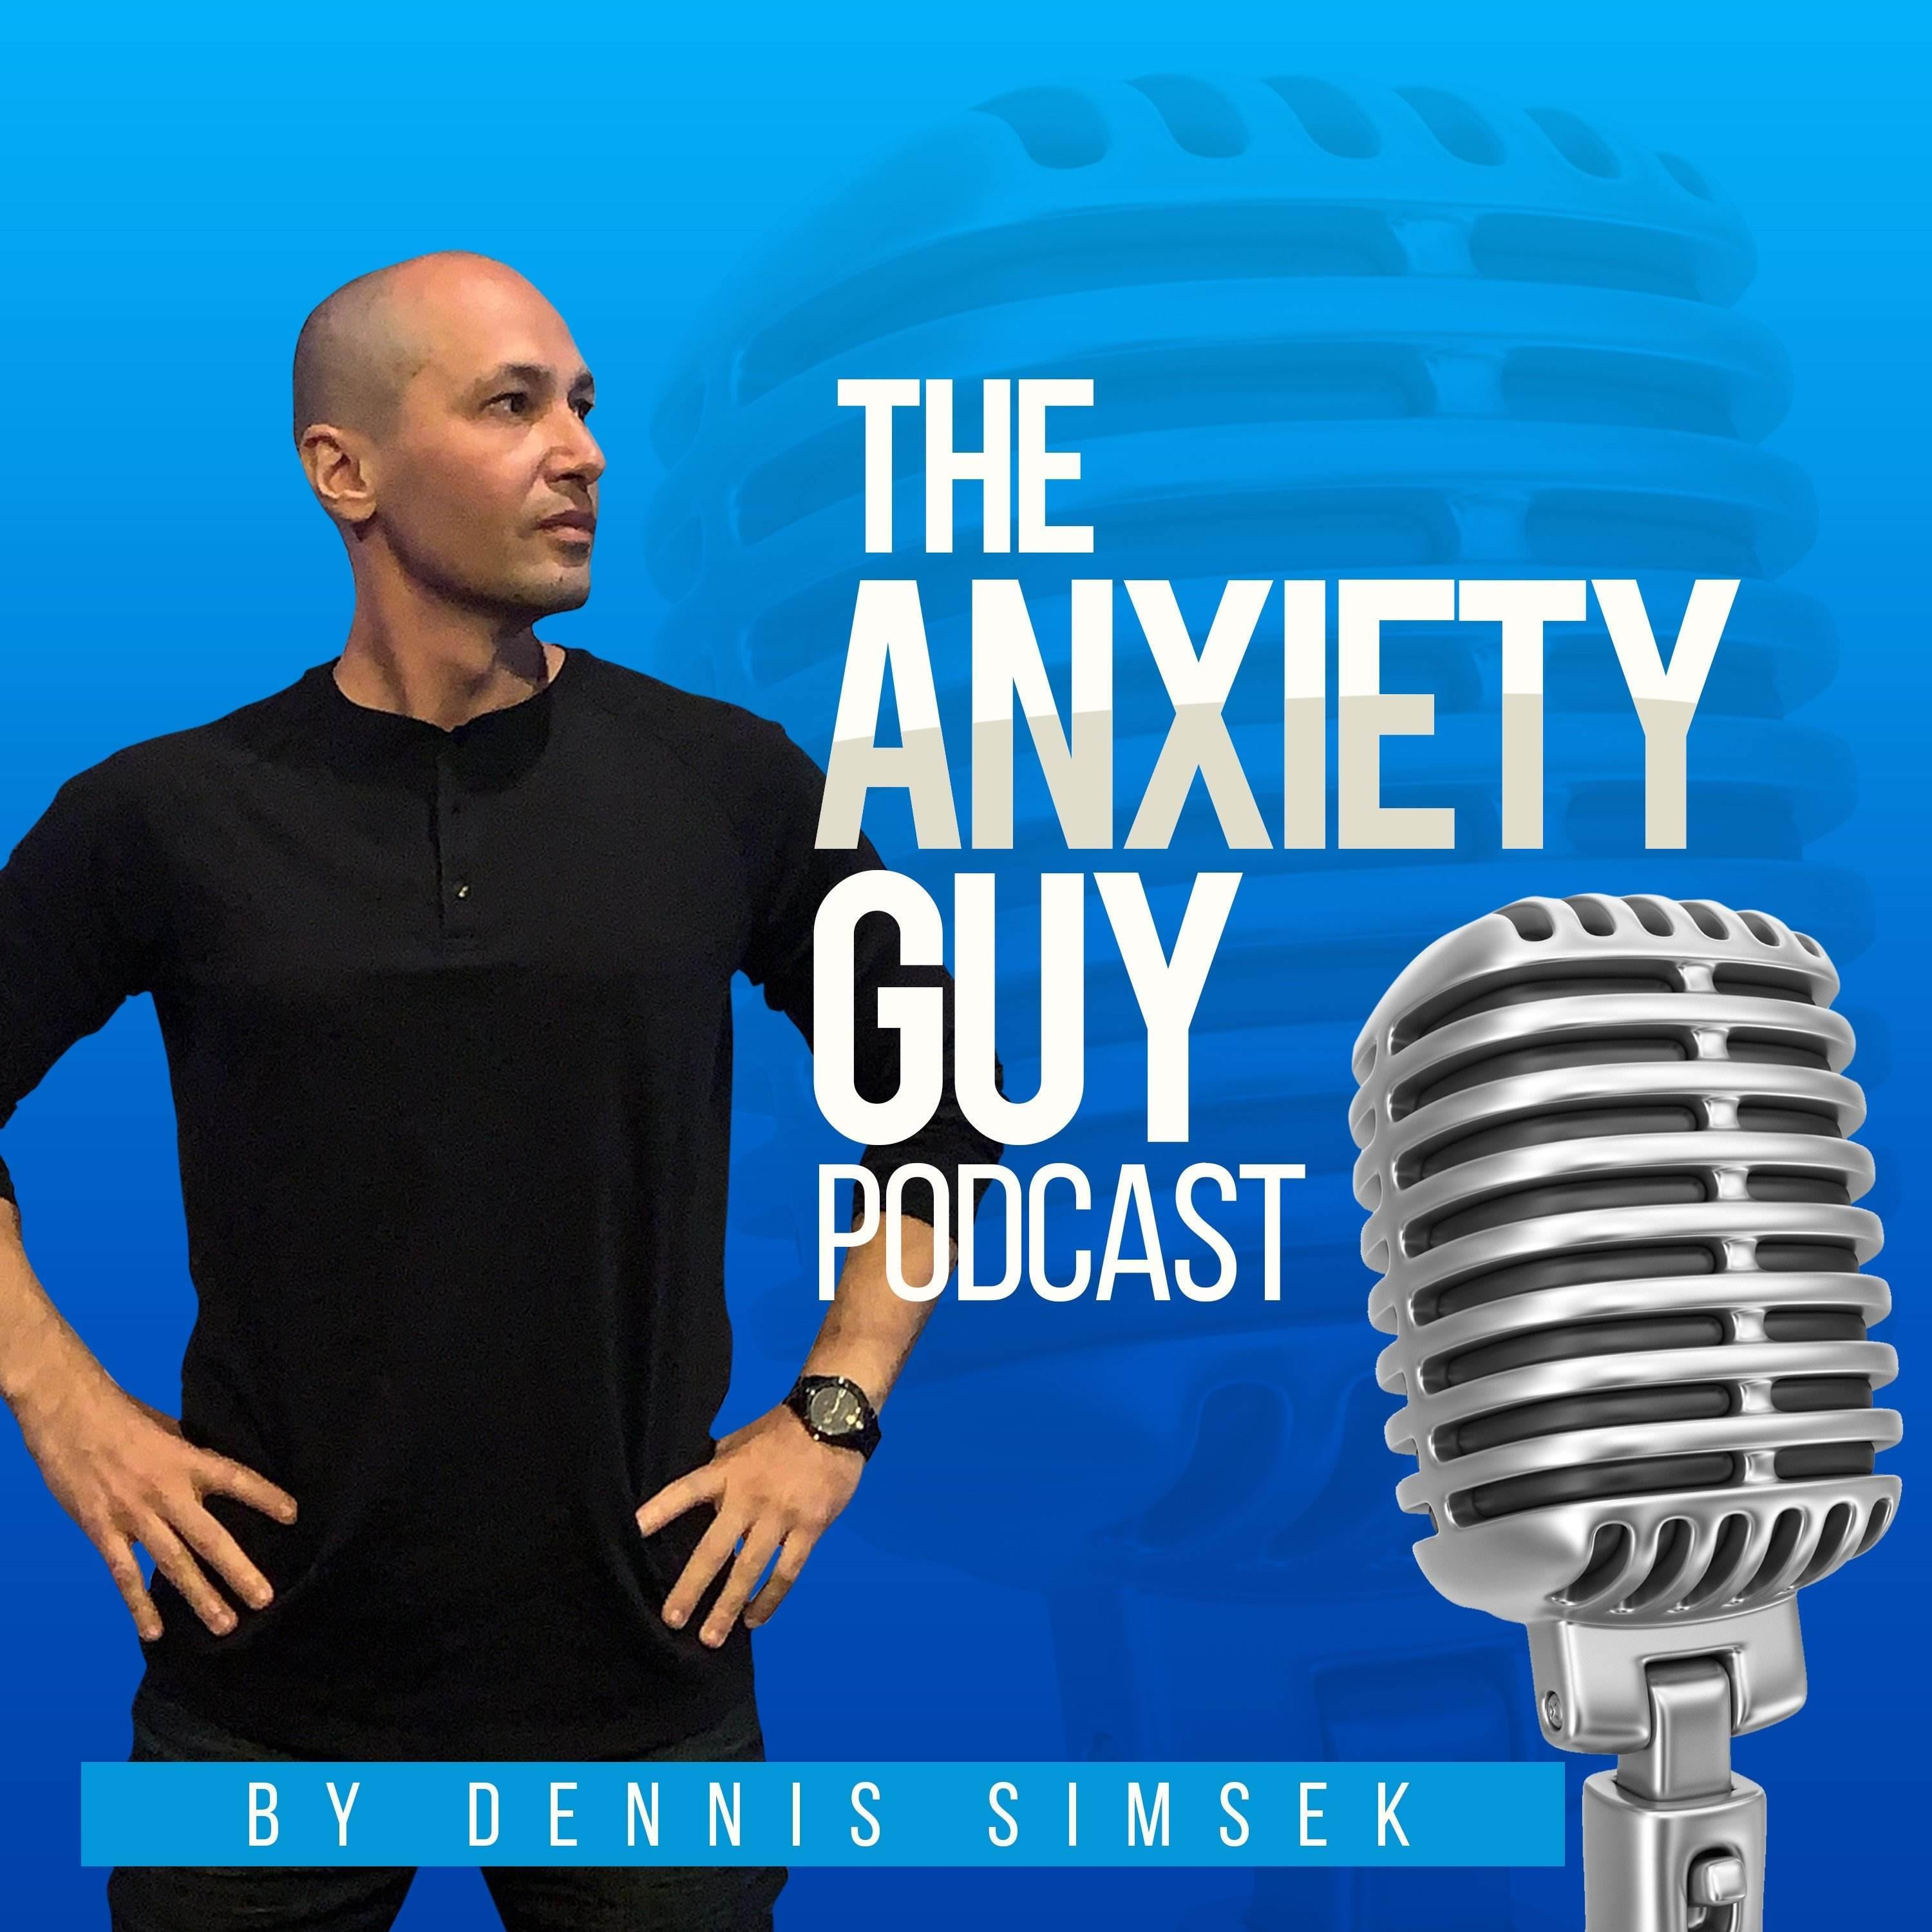 The Anxiety Guy Podcast show art